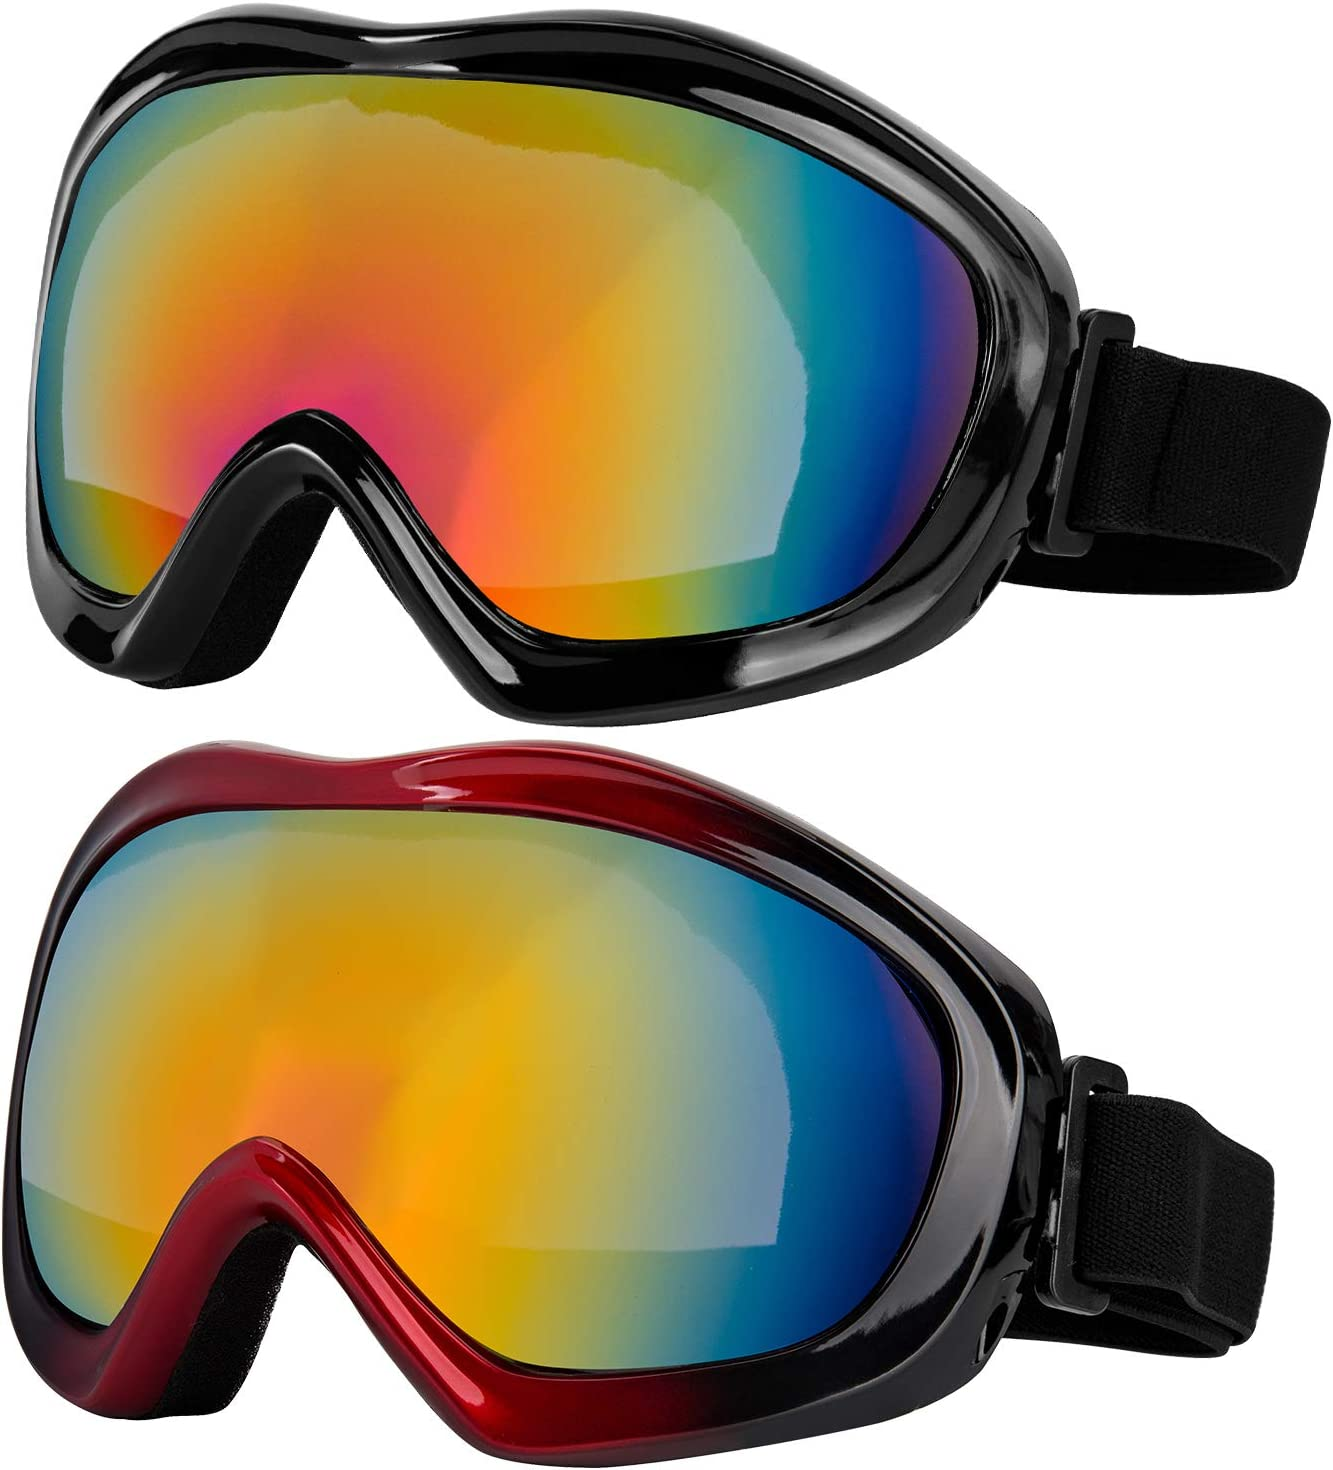 LJDJ Ski Goggles, Pack of 2 – Snowboard Adjustable UV 400 Protective Motorcycle Goggles Outdoor Sports Tactical Glasses Dust-Proof Combat Military Sunglasses for Kids, Boys Girls, Youth, Men, Women